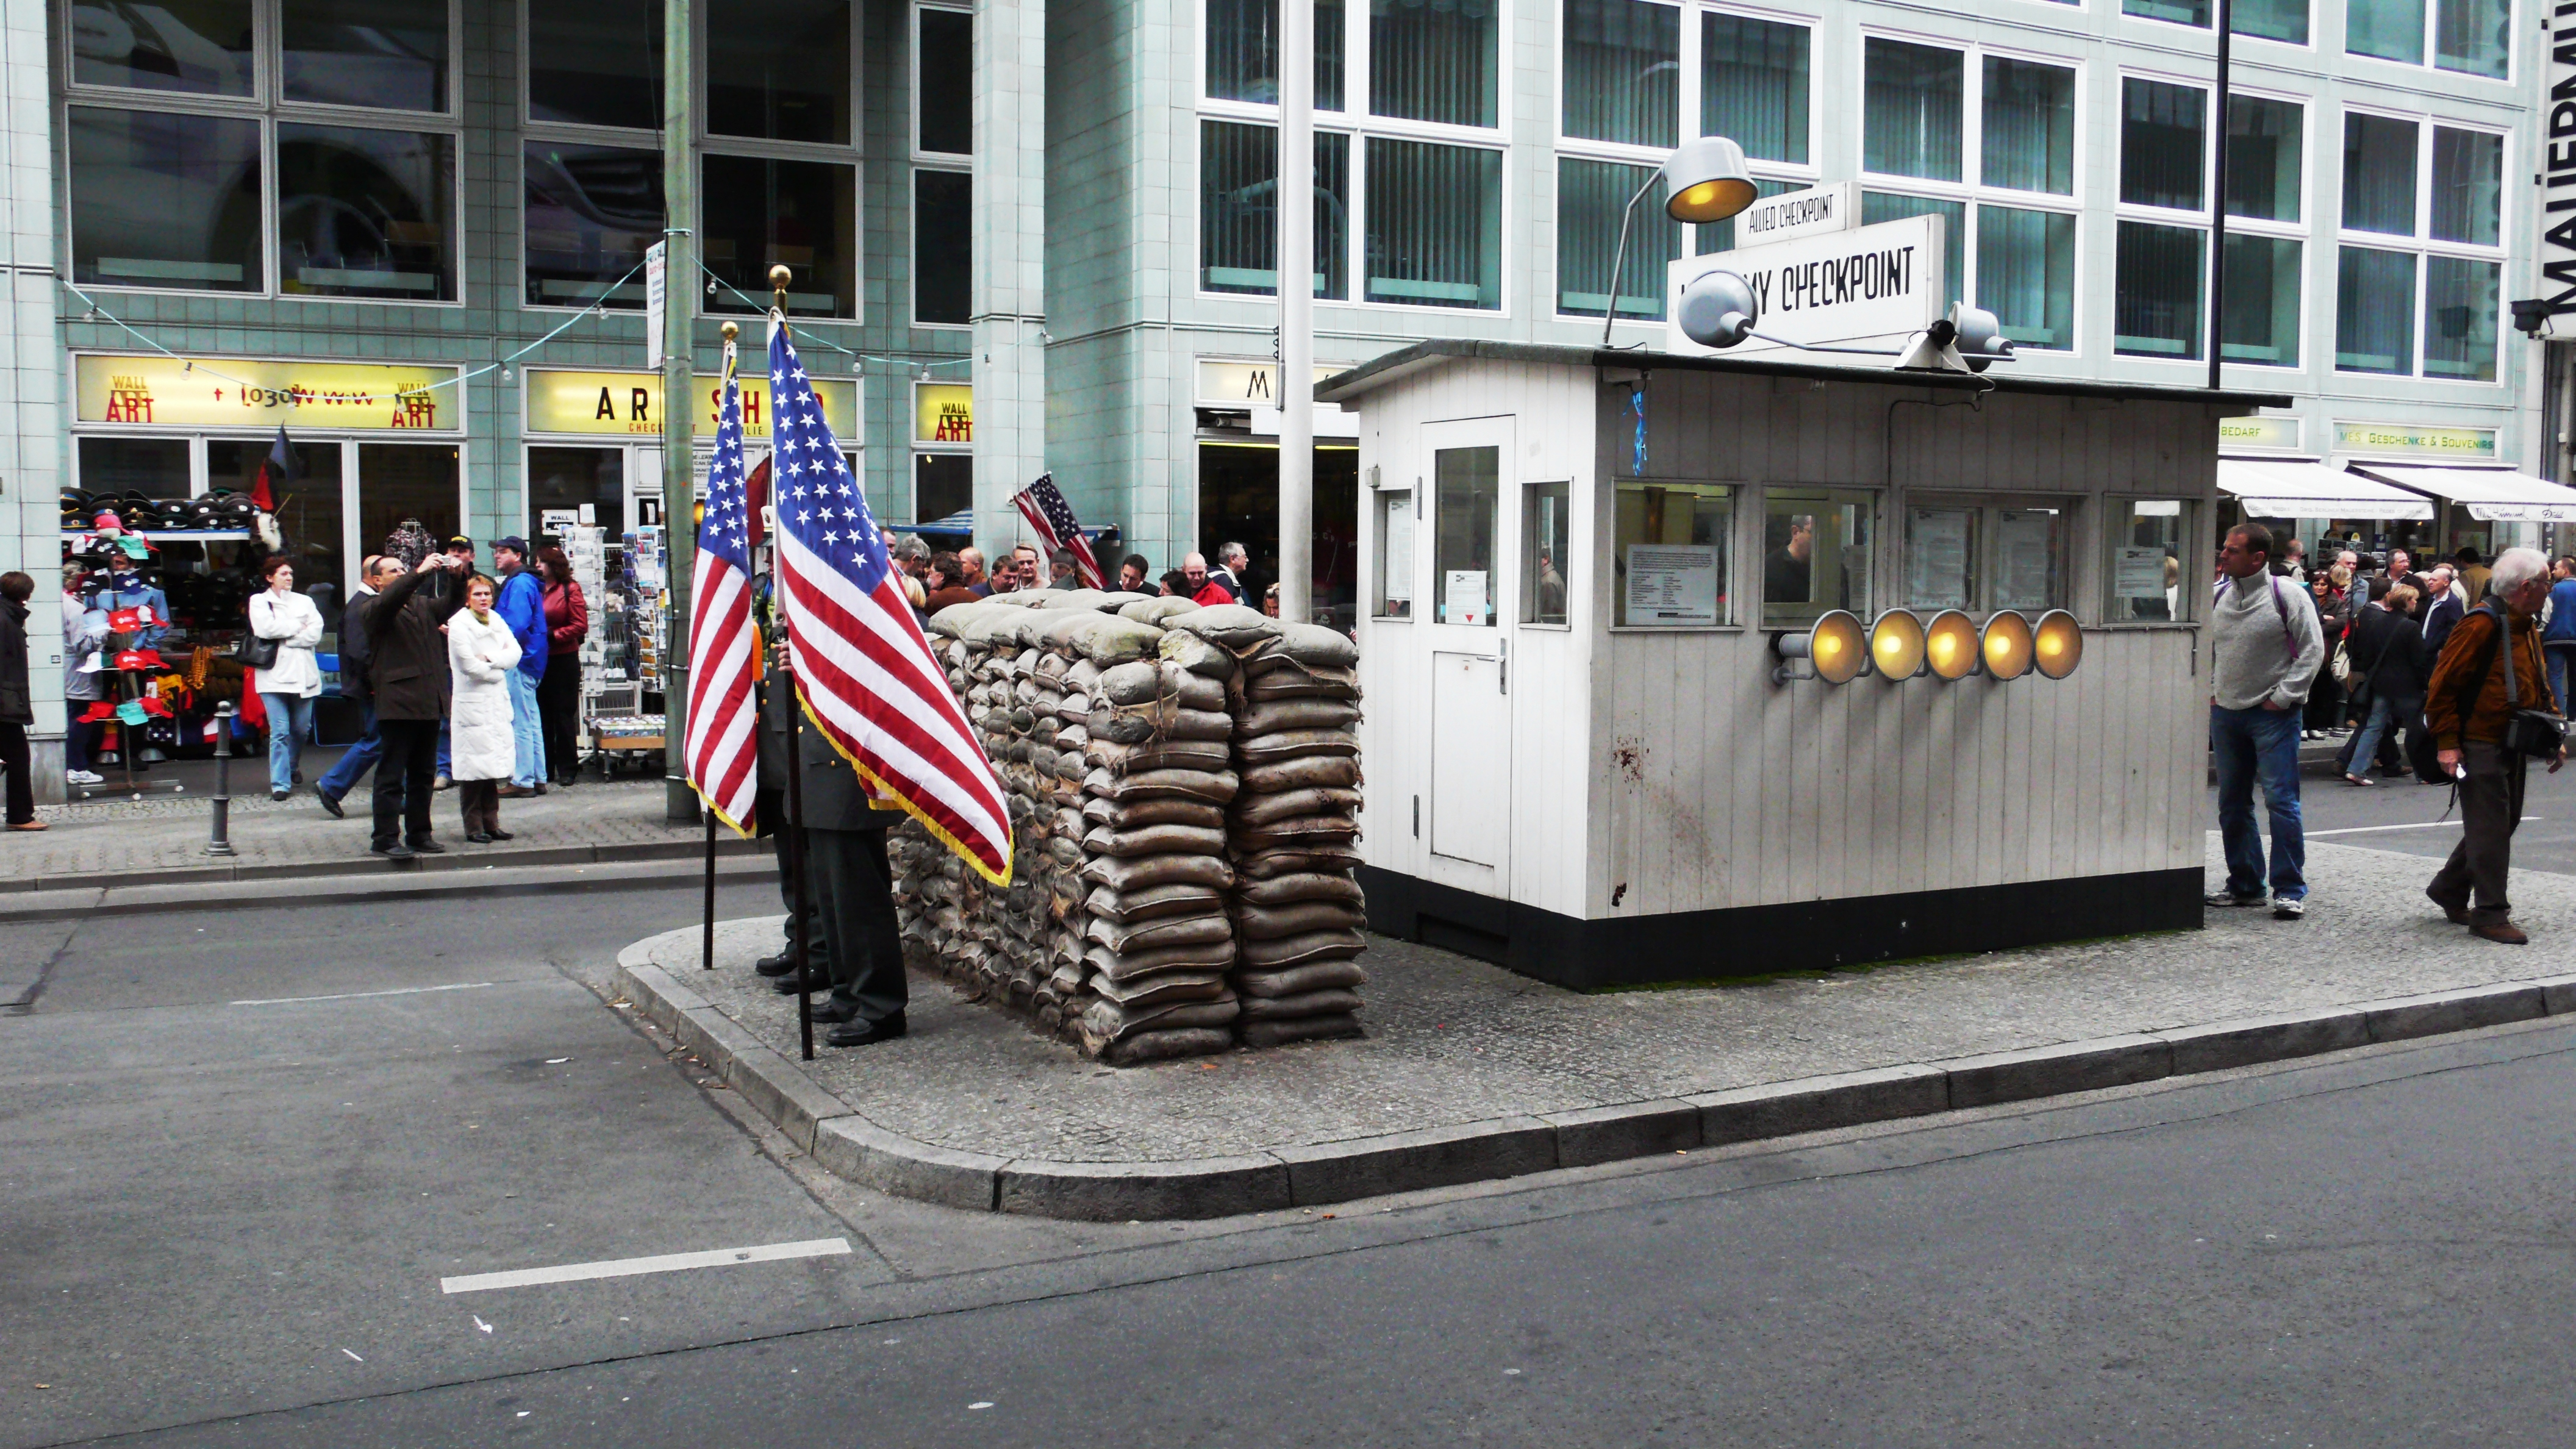 Checkpoint Charlie ve Berlin Duvarı